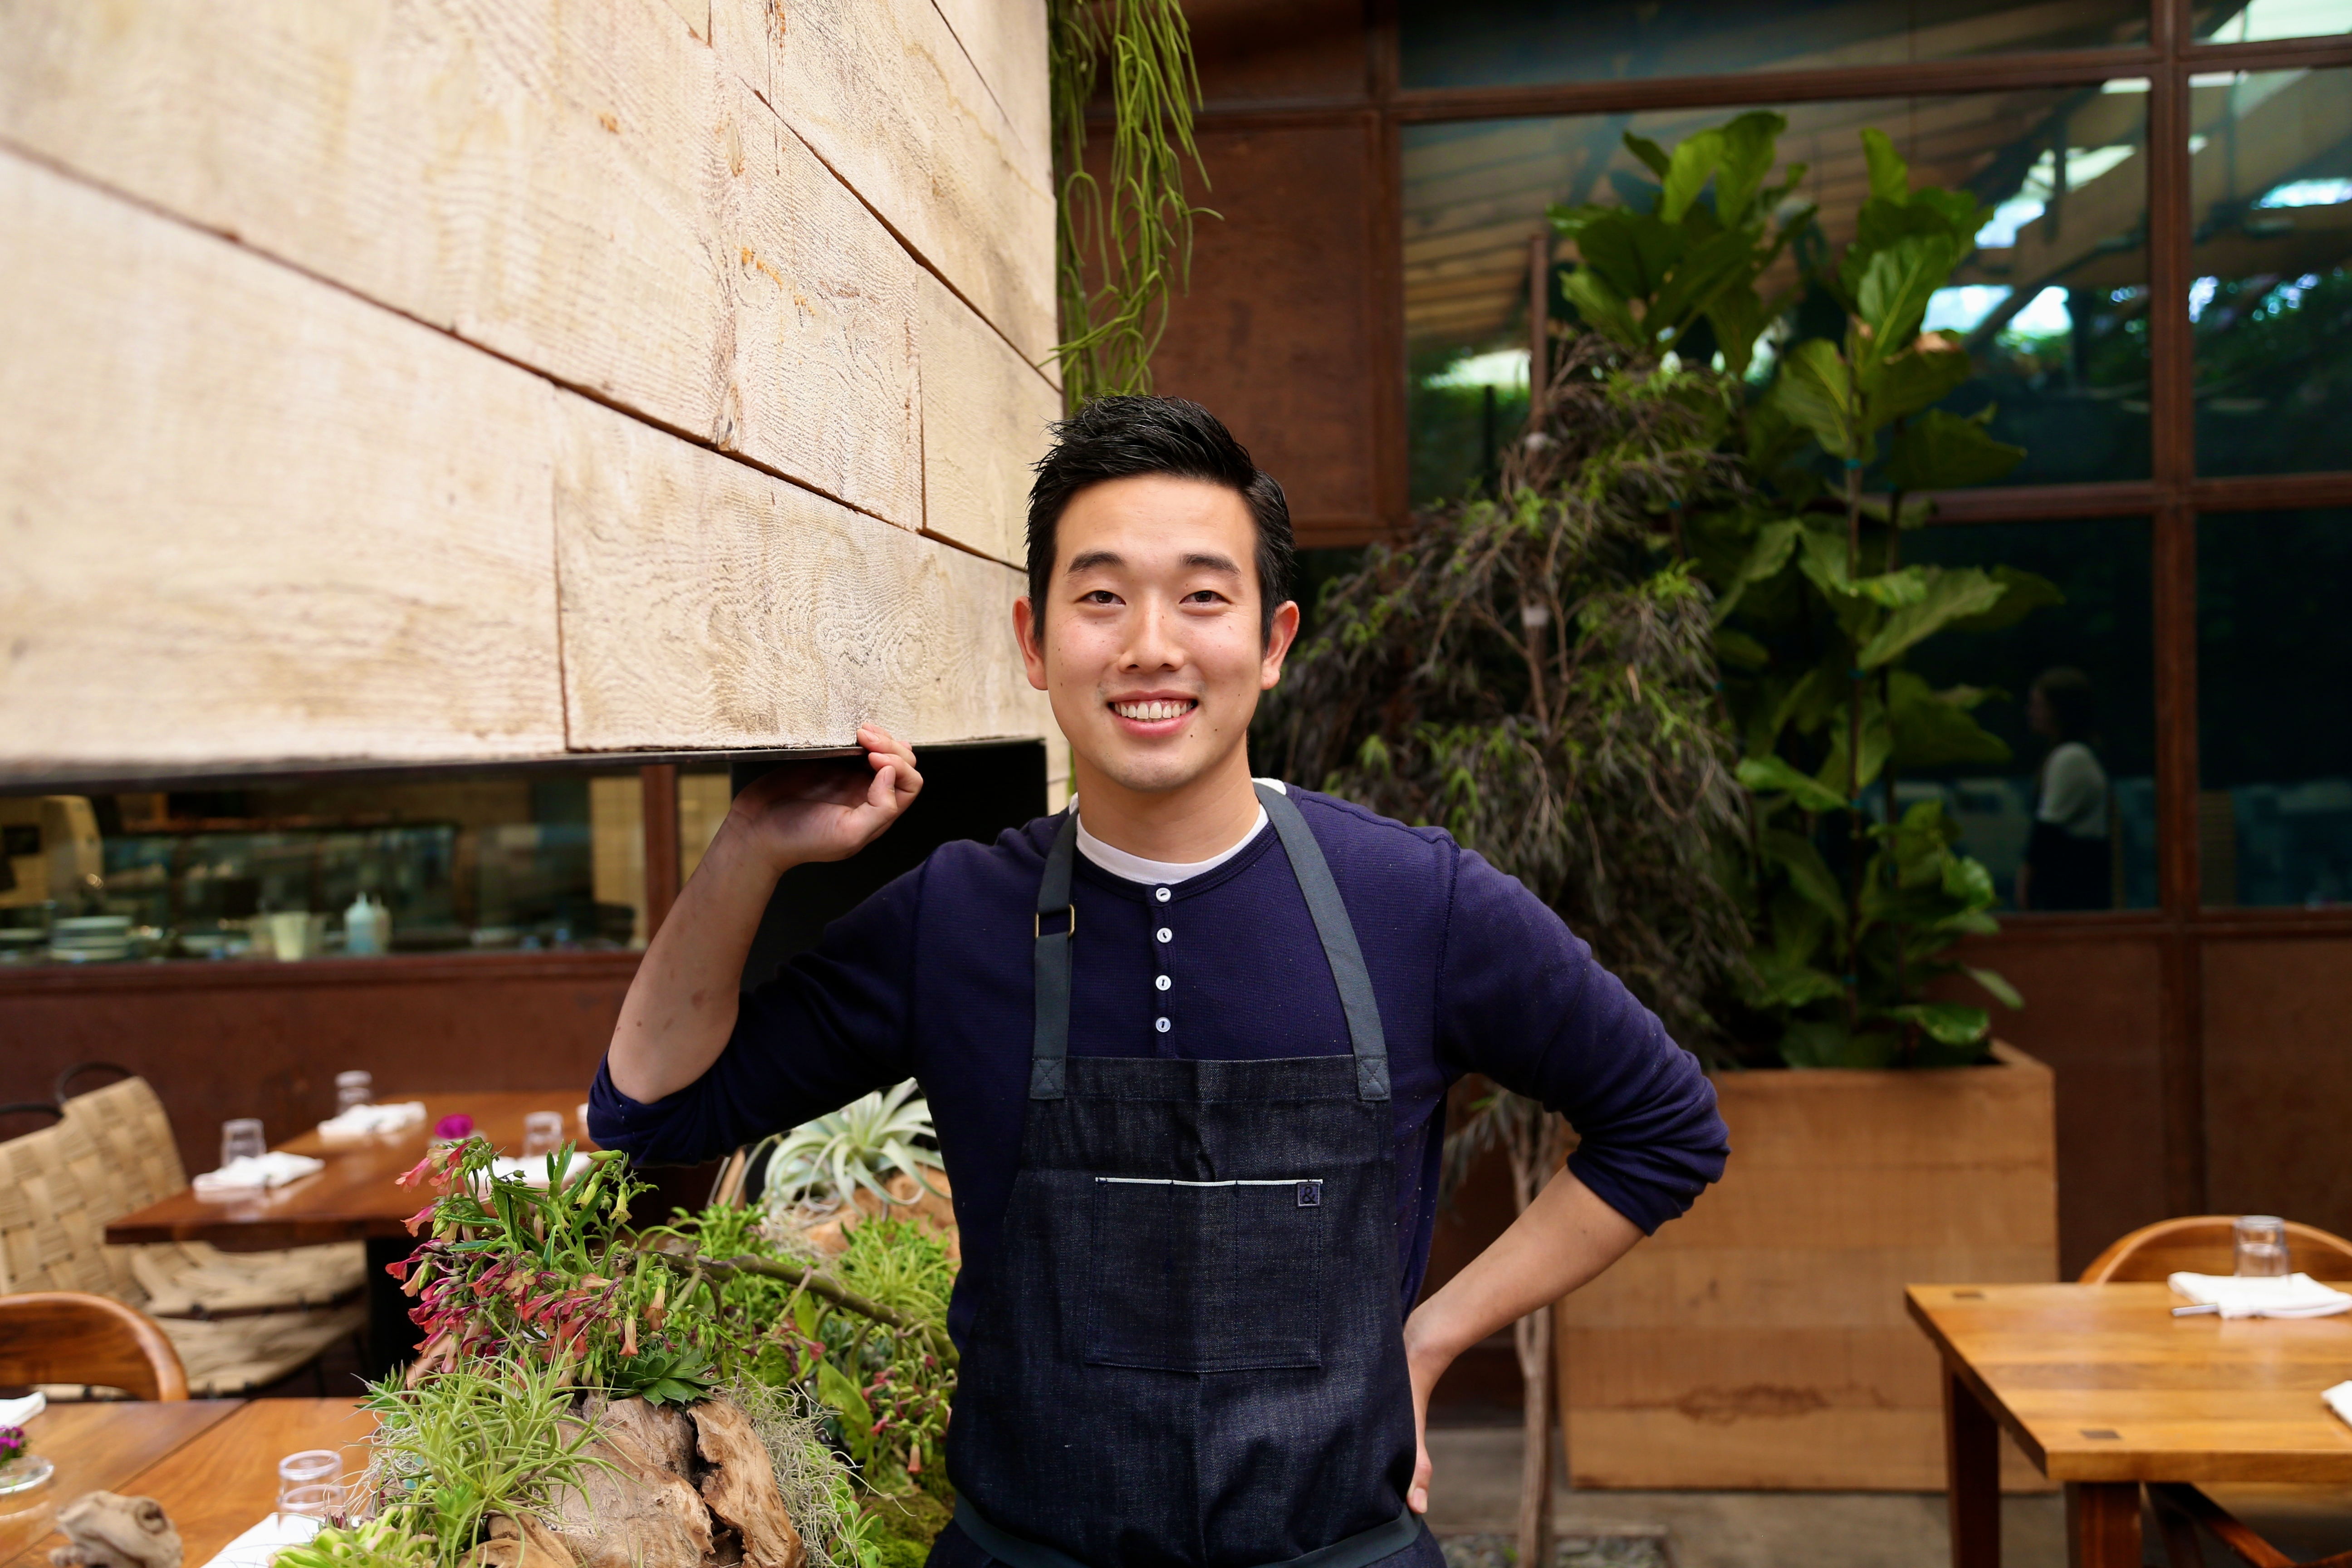 Six Facts About Blackship, West Hollywood's New Japanese-Italian Restaurant